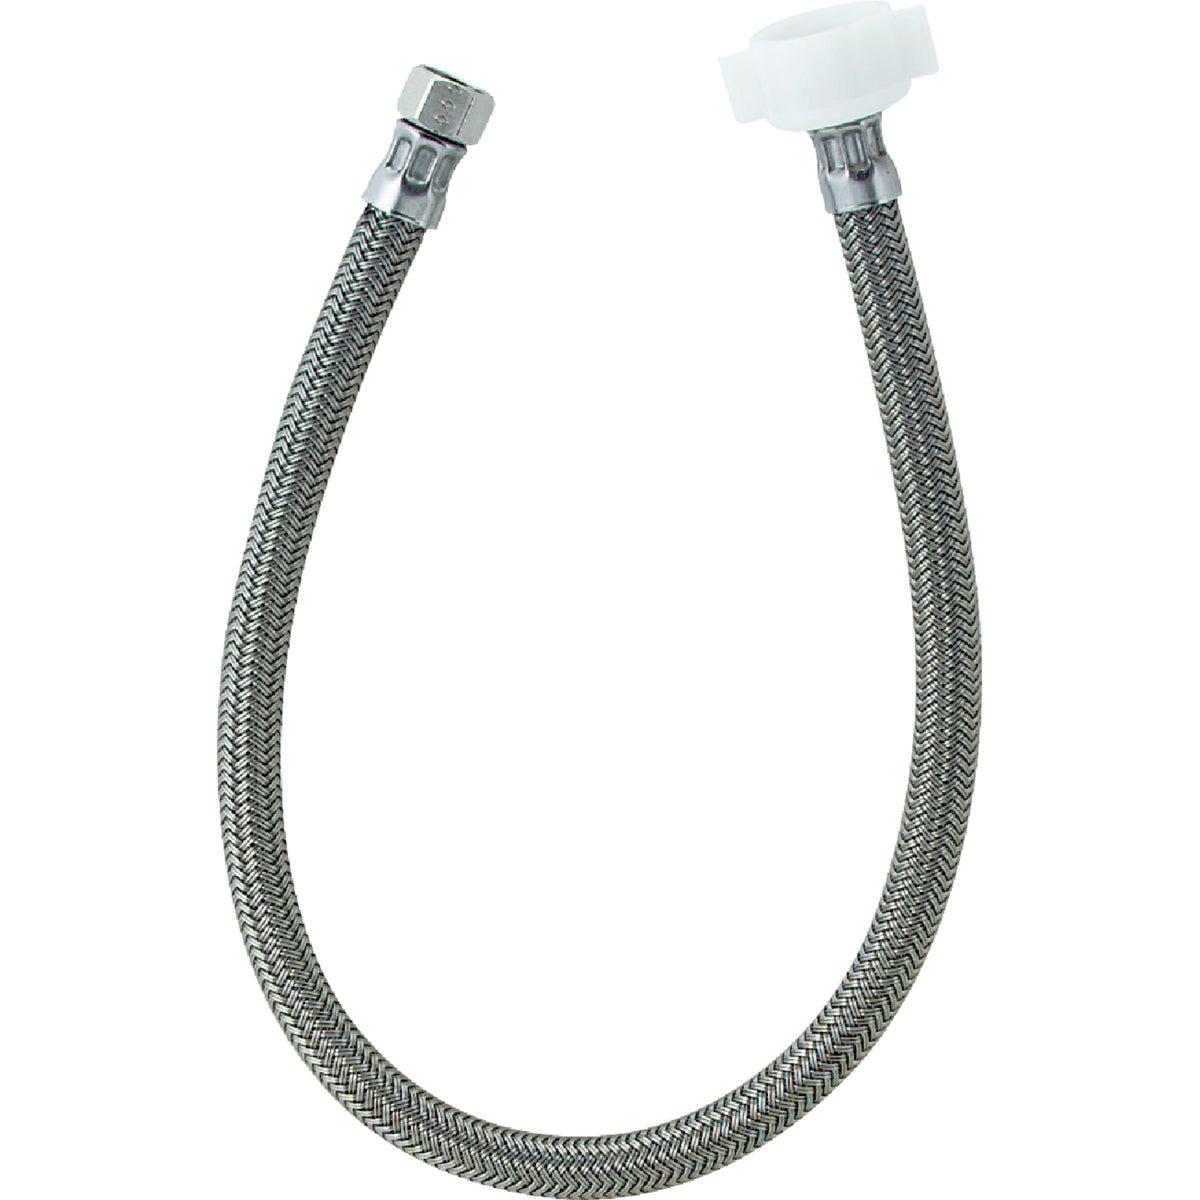 "12"" FAUCET CONNECTOR - PSB830 by Brass Craft"